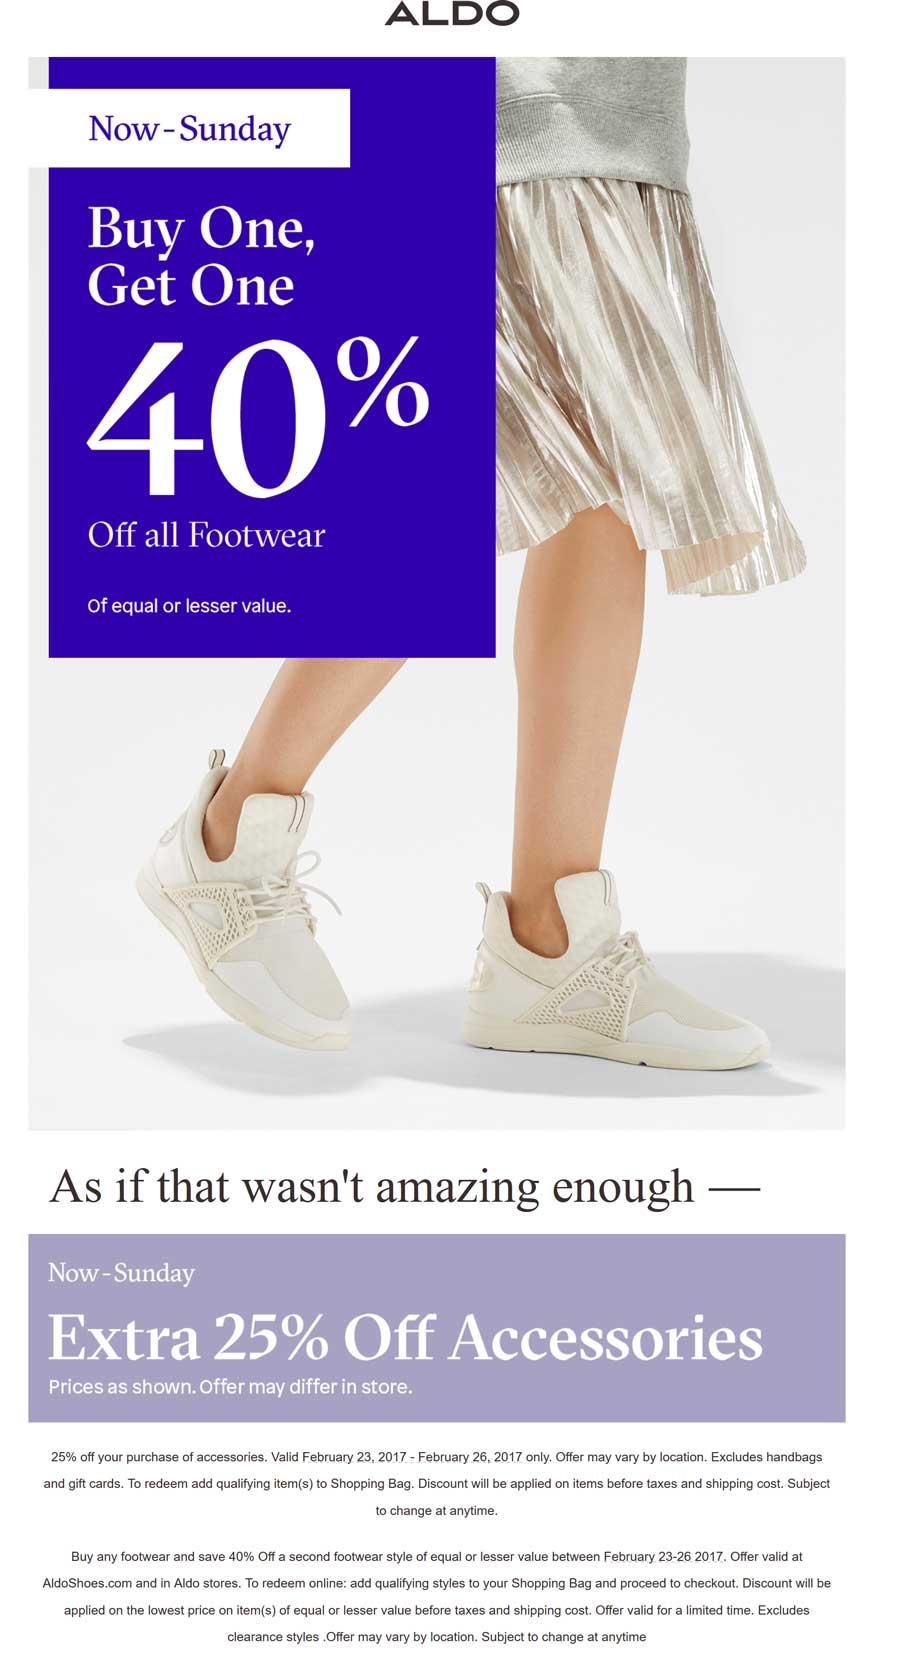 Aldo Coupon October 2018 Second item 40% off at Aldo, ditto online